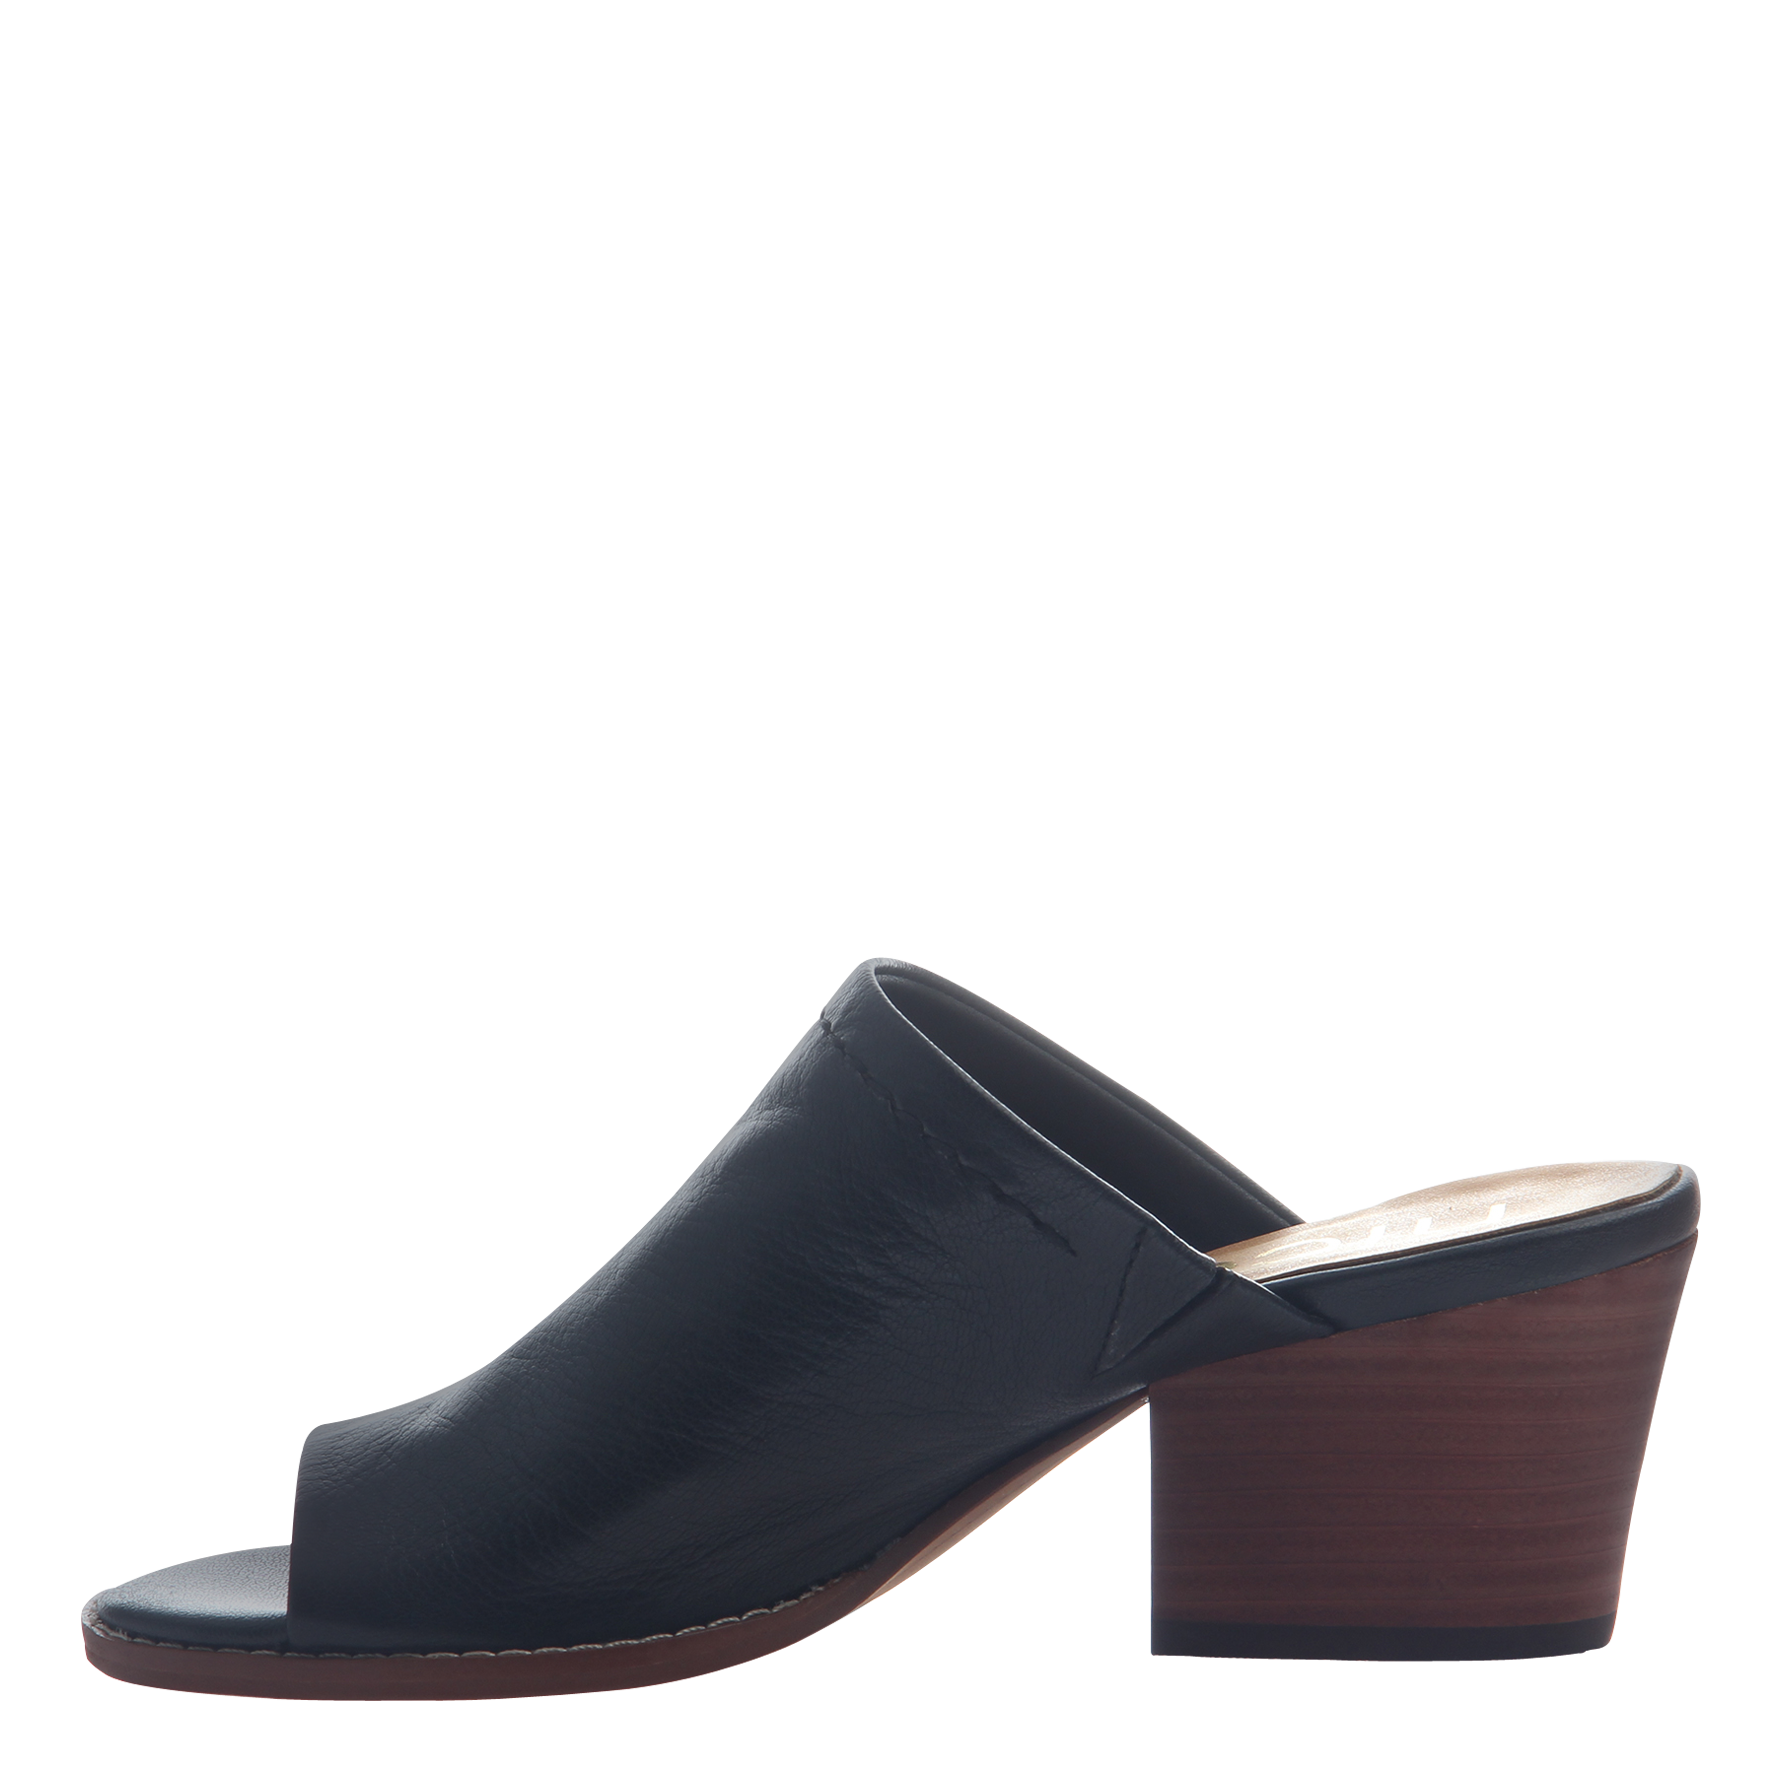 Nicole mule slide Carolina in black inside view